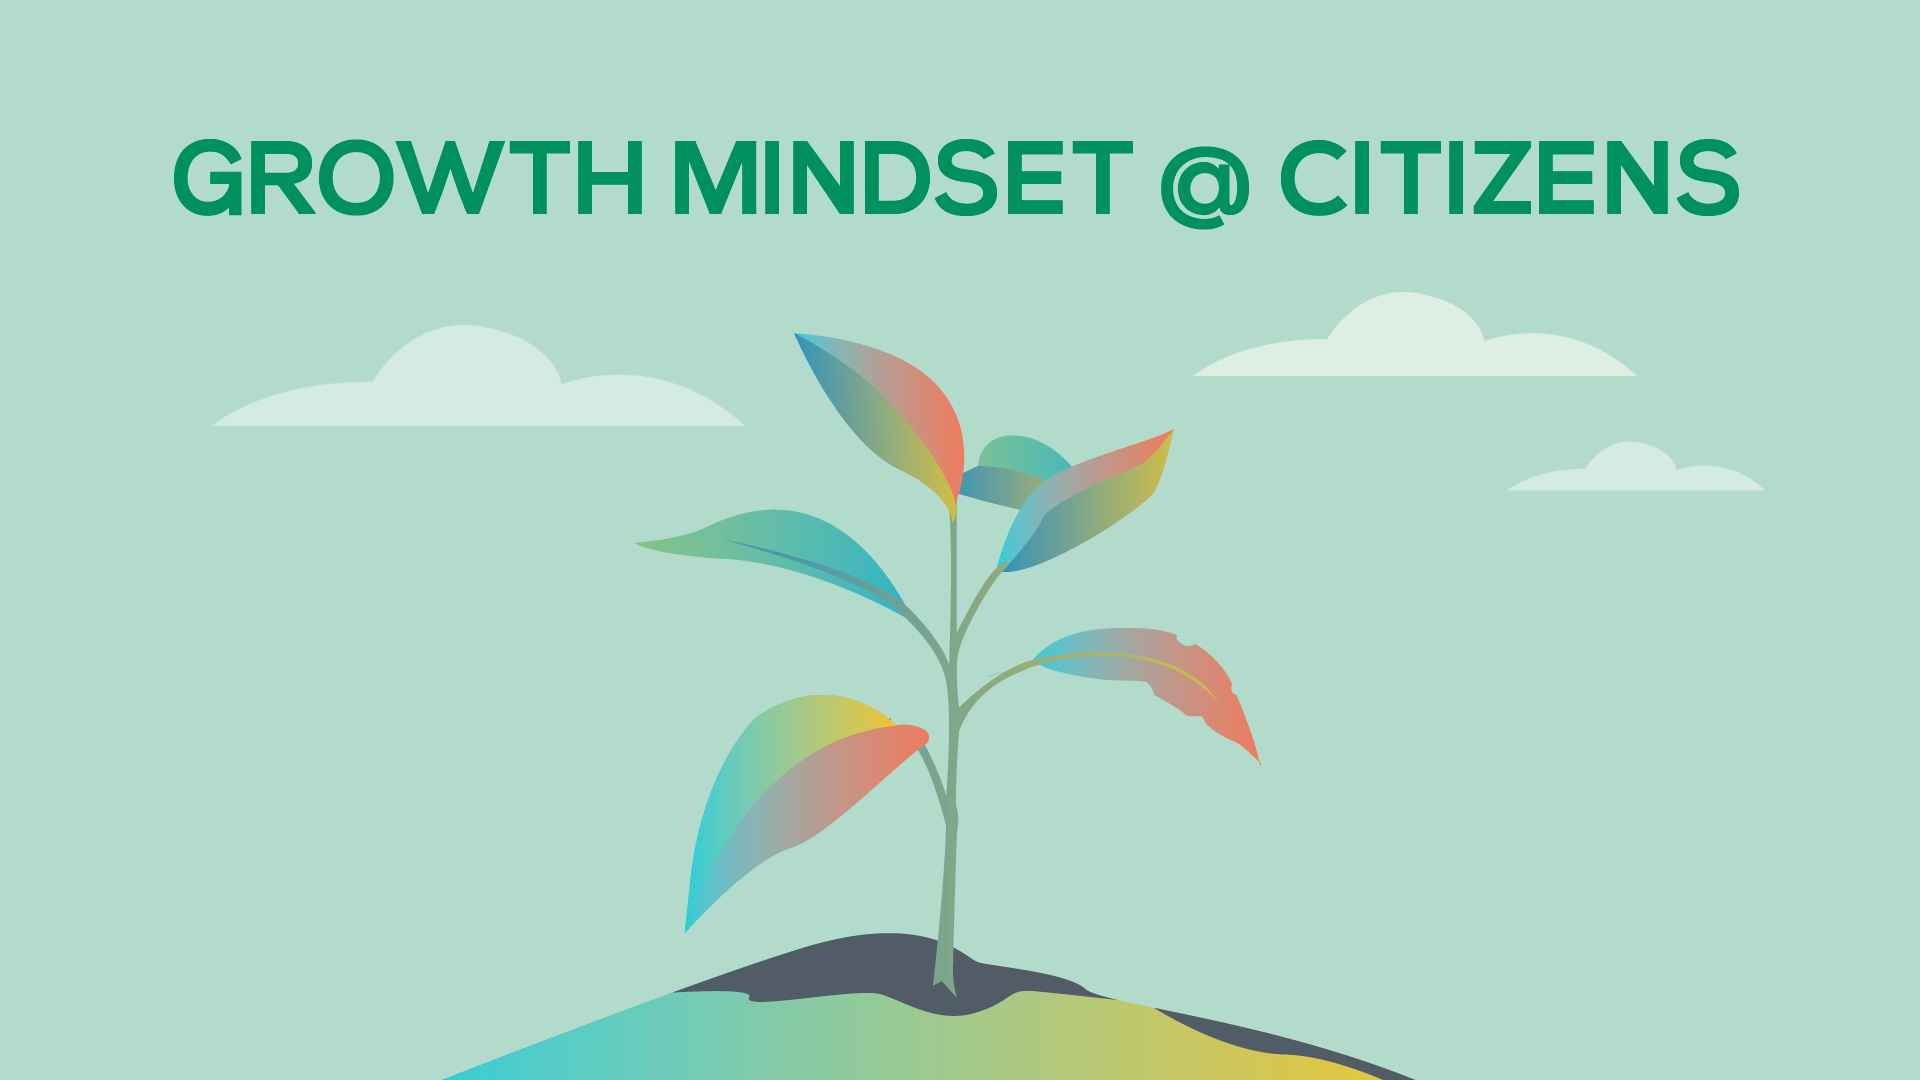 Video about Growth Mindset